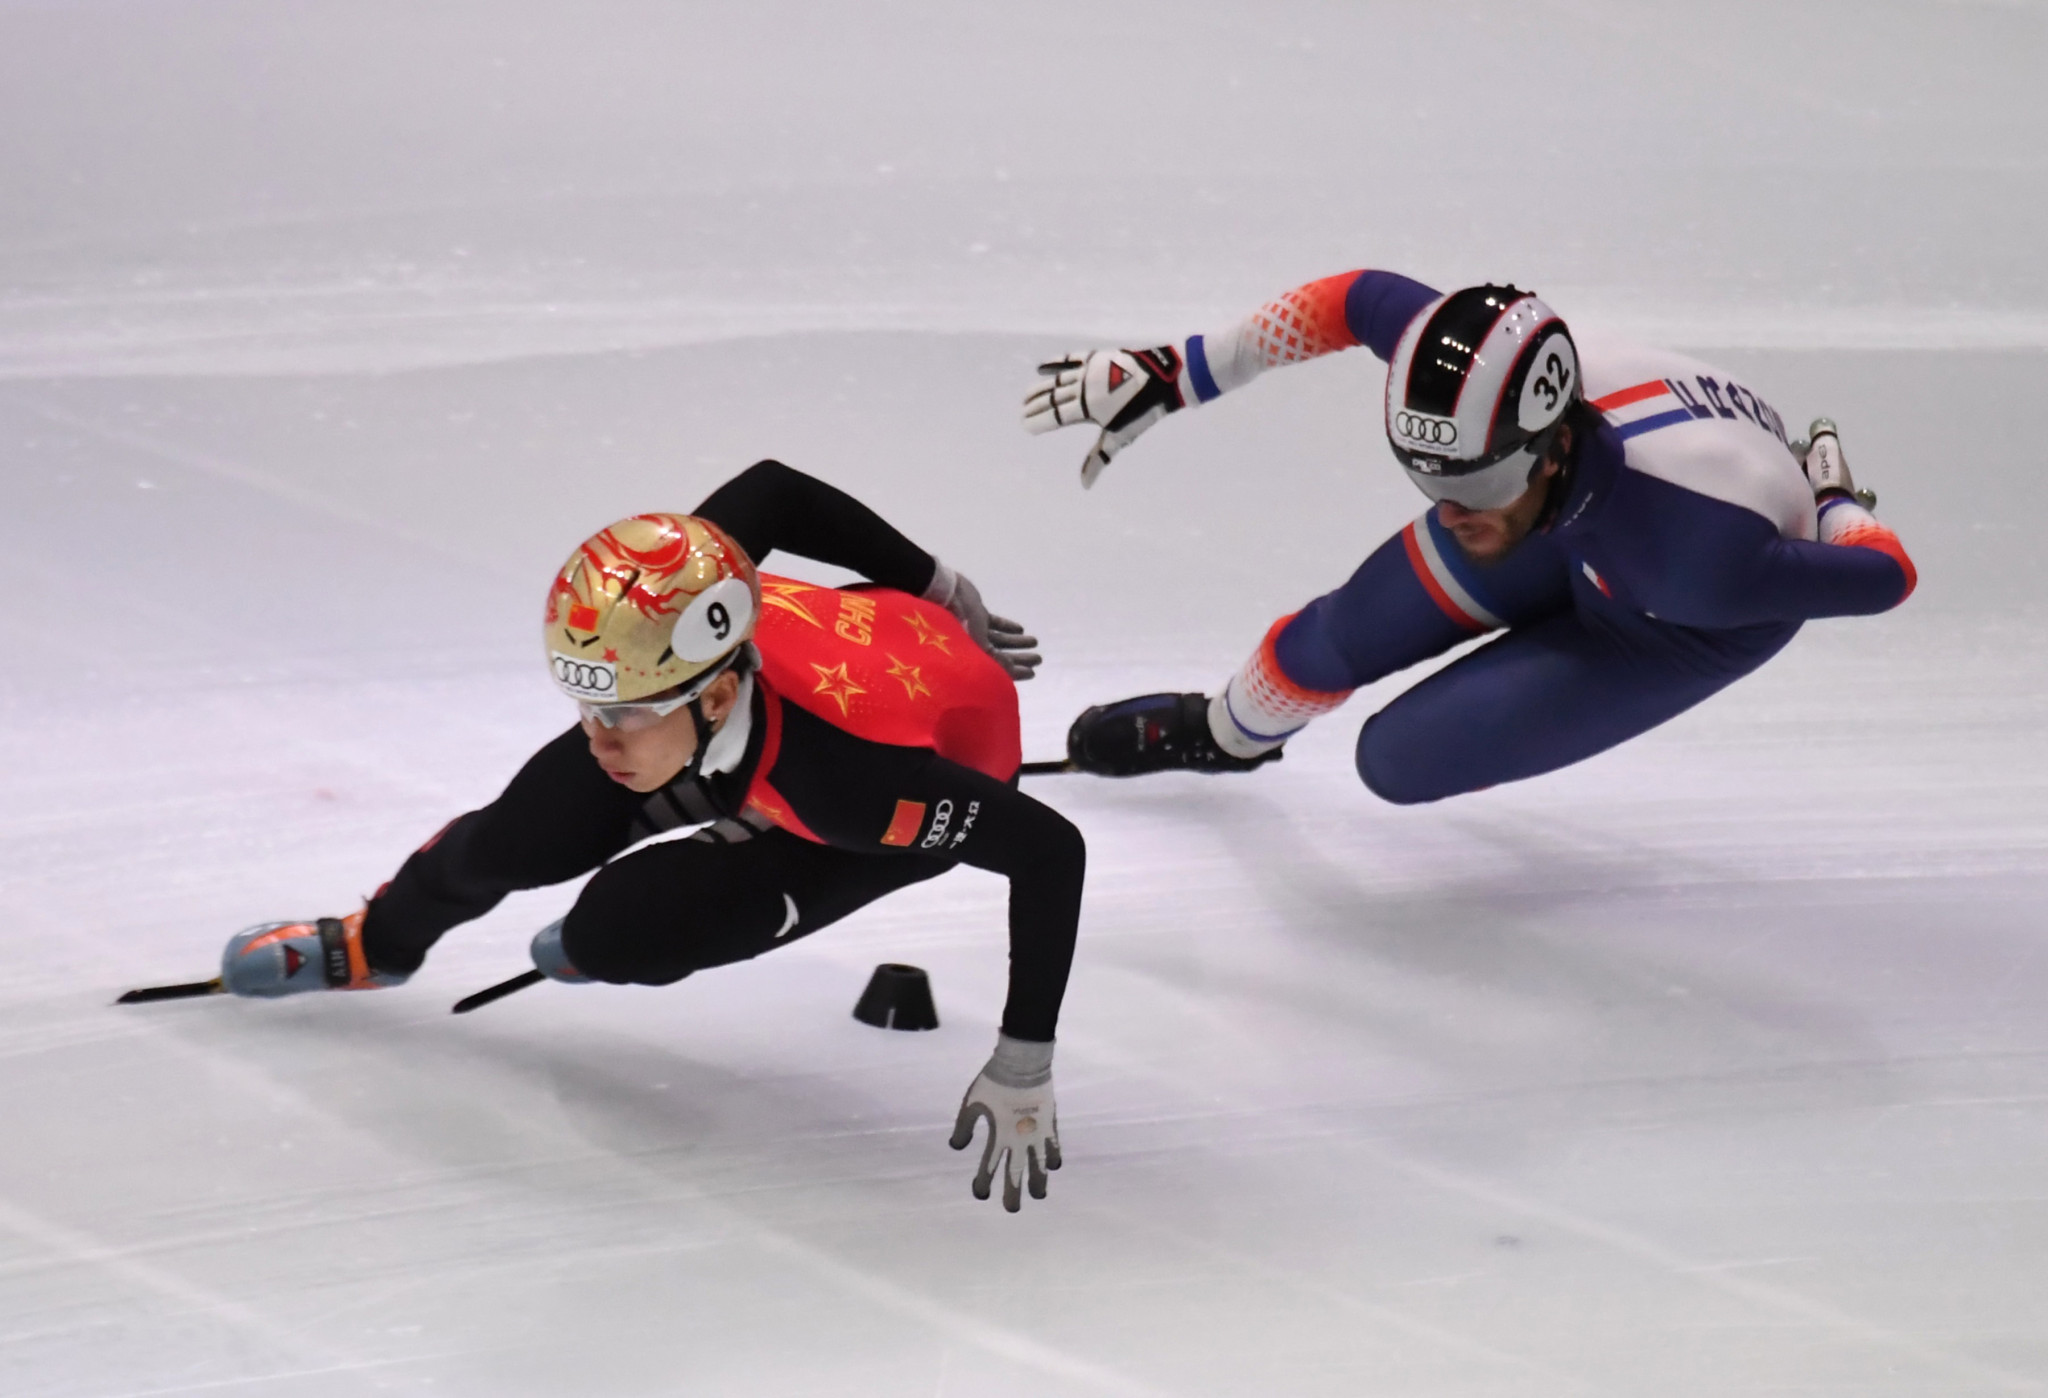 Han Tianyu, left, formed part of the Chinese quartet that posted the fastest time in the quarter-finals of the men's 5,000 metres relay ©Getty Images